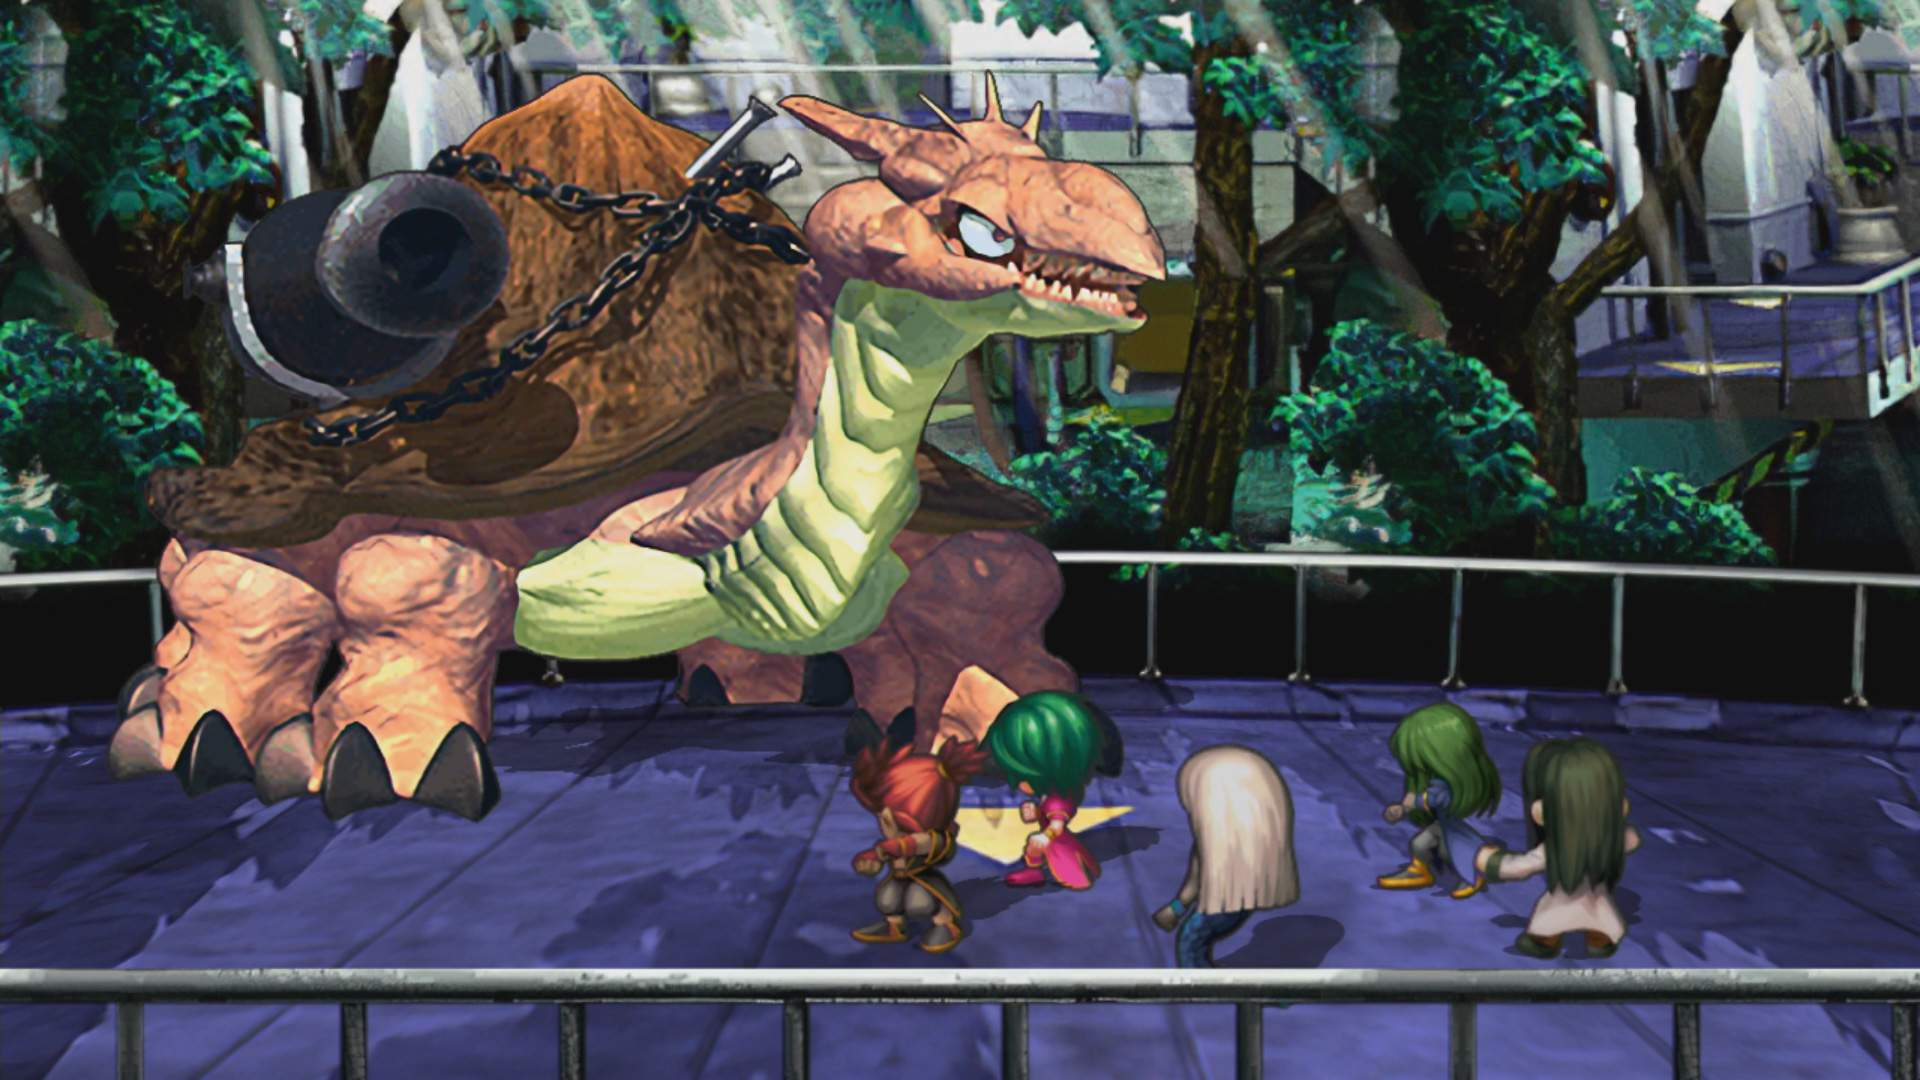 5 characters from SaGa Frontier Remastered face off against a large monster in a laboratory.